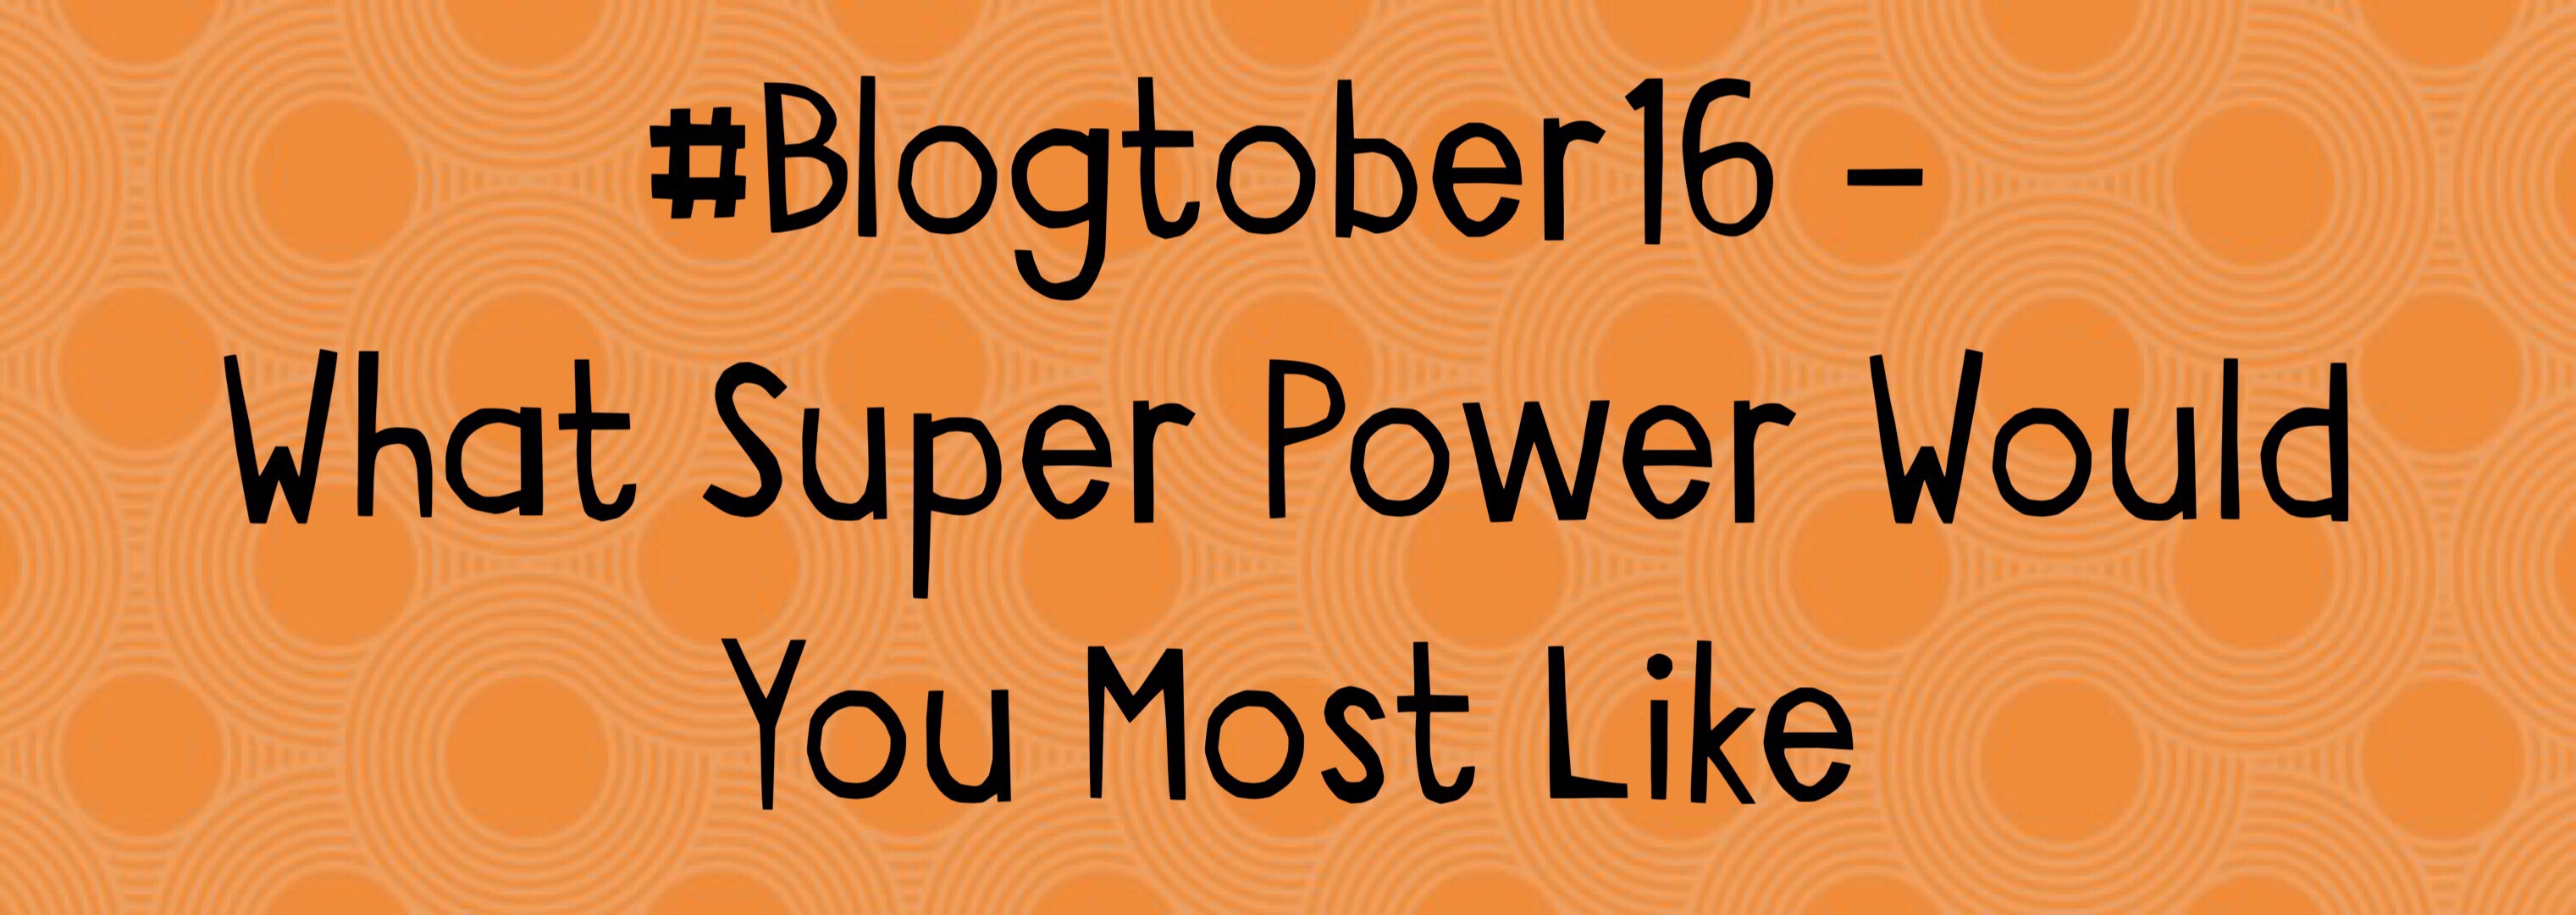 What Super Power Would You Most Like – #Blogtober16 Day 25